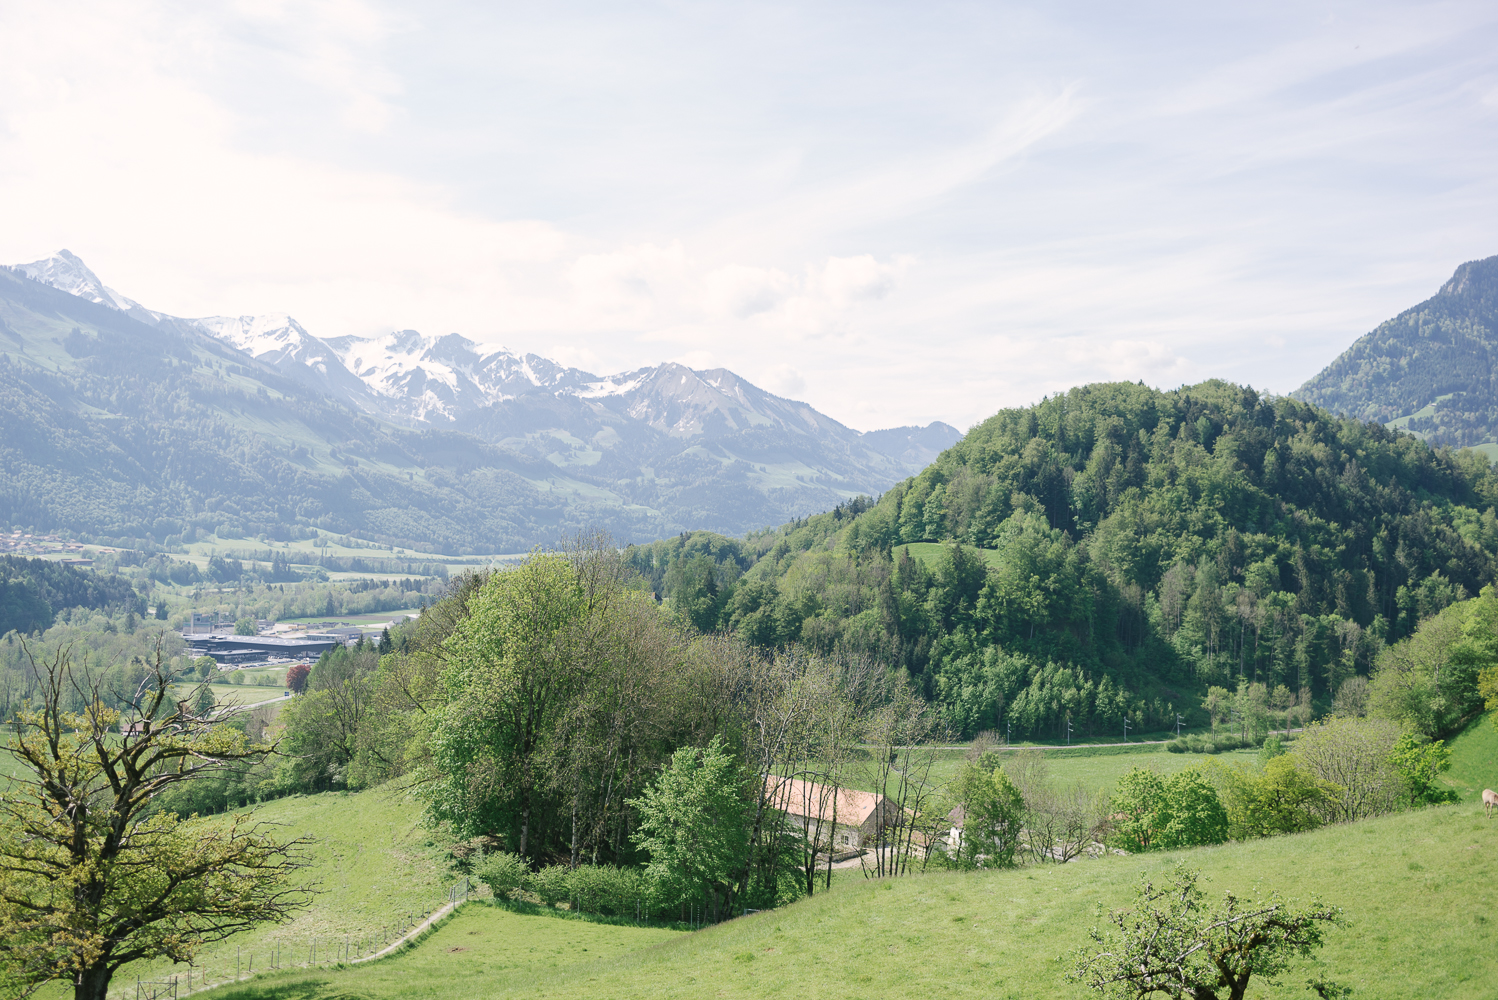 Beautyosuaurs Lex-Alex Good-Lifestyle Blog-Travel-Gruyere-Switzerland-AlexGoodTravels-Spring